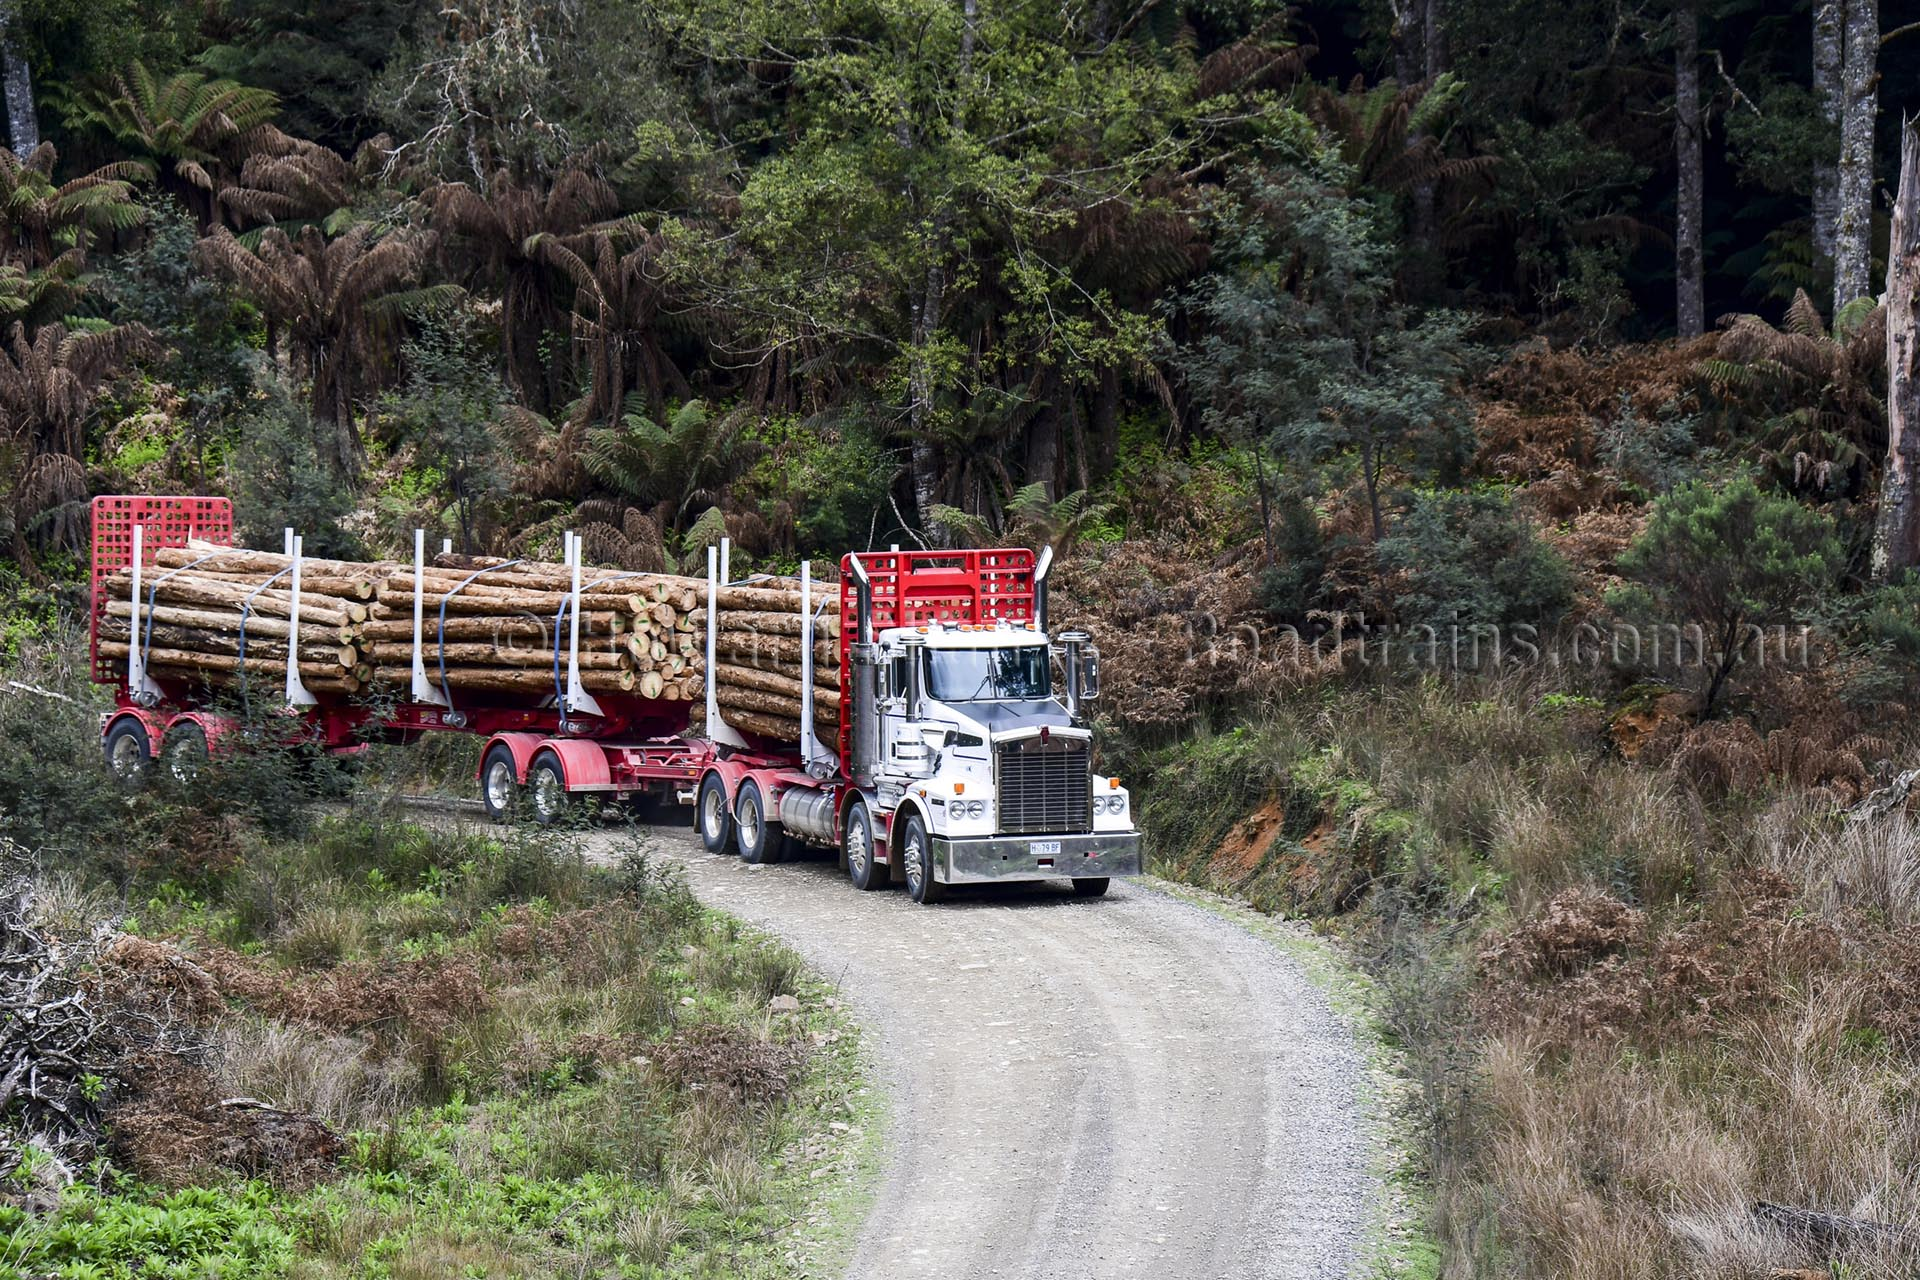 The Kennedy folding quad-dog fully loaded on the way out the bush